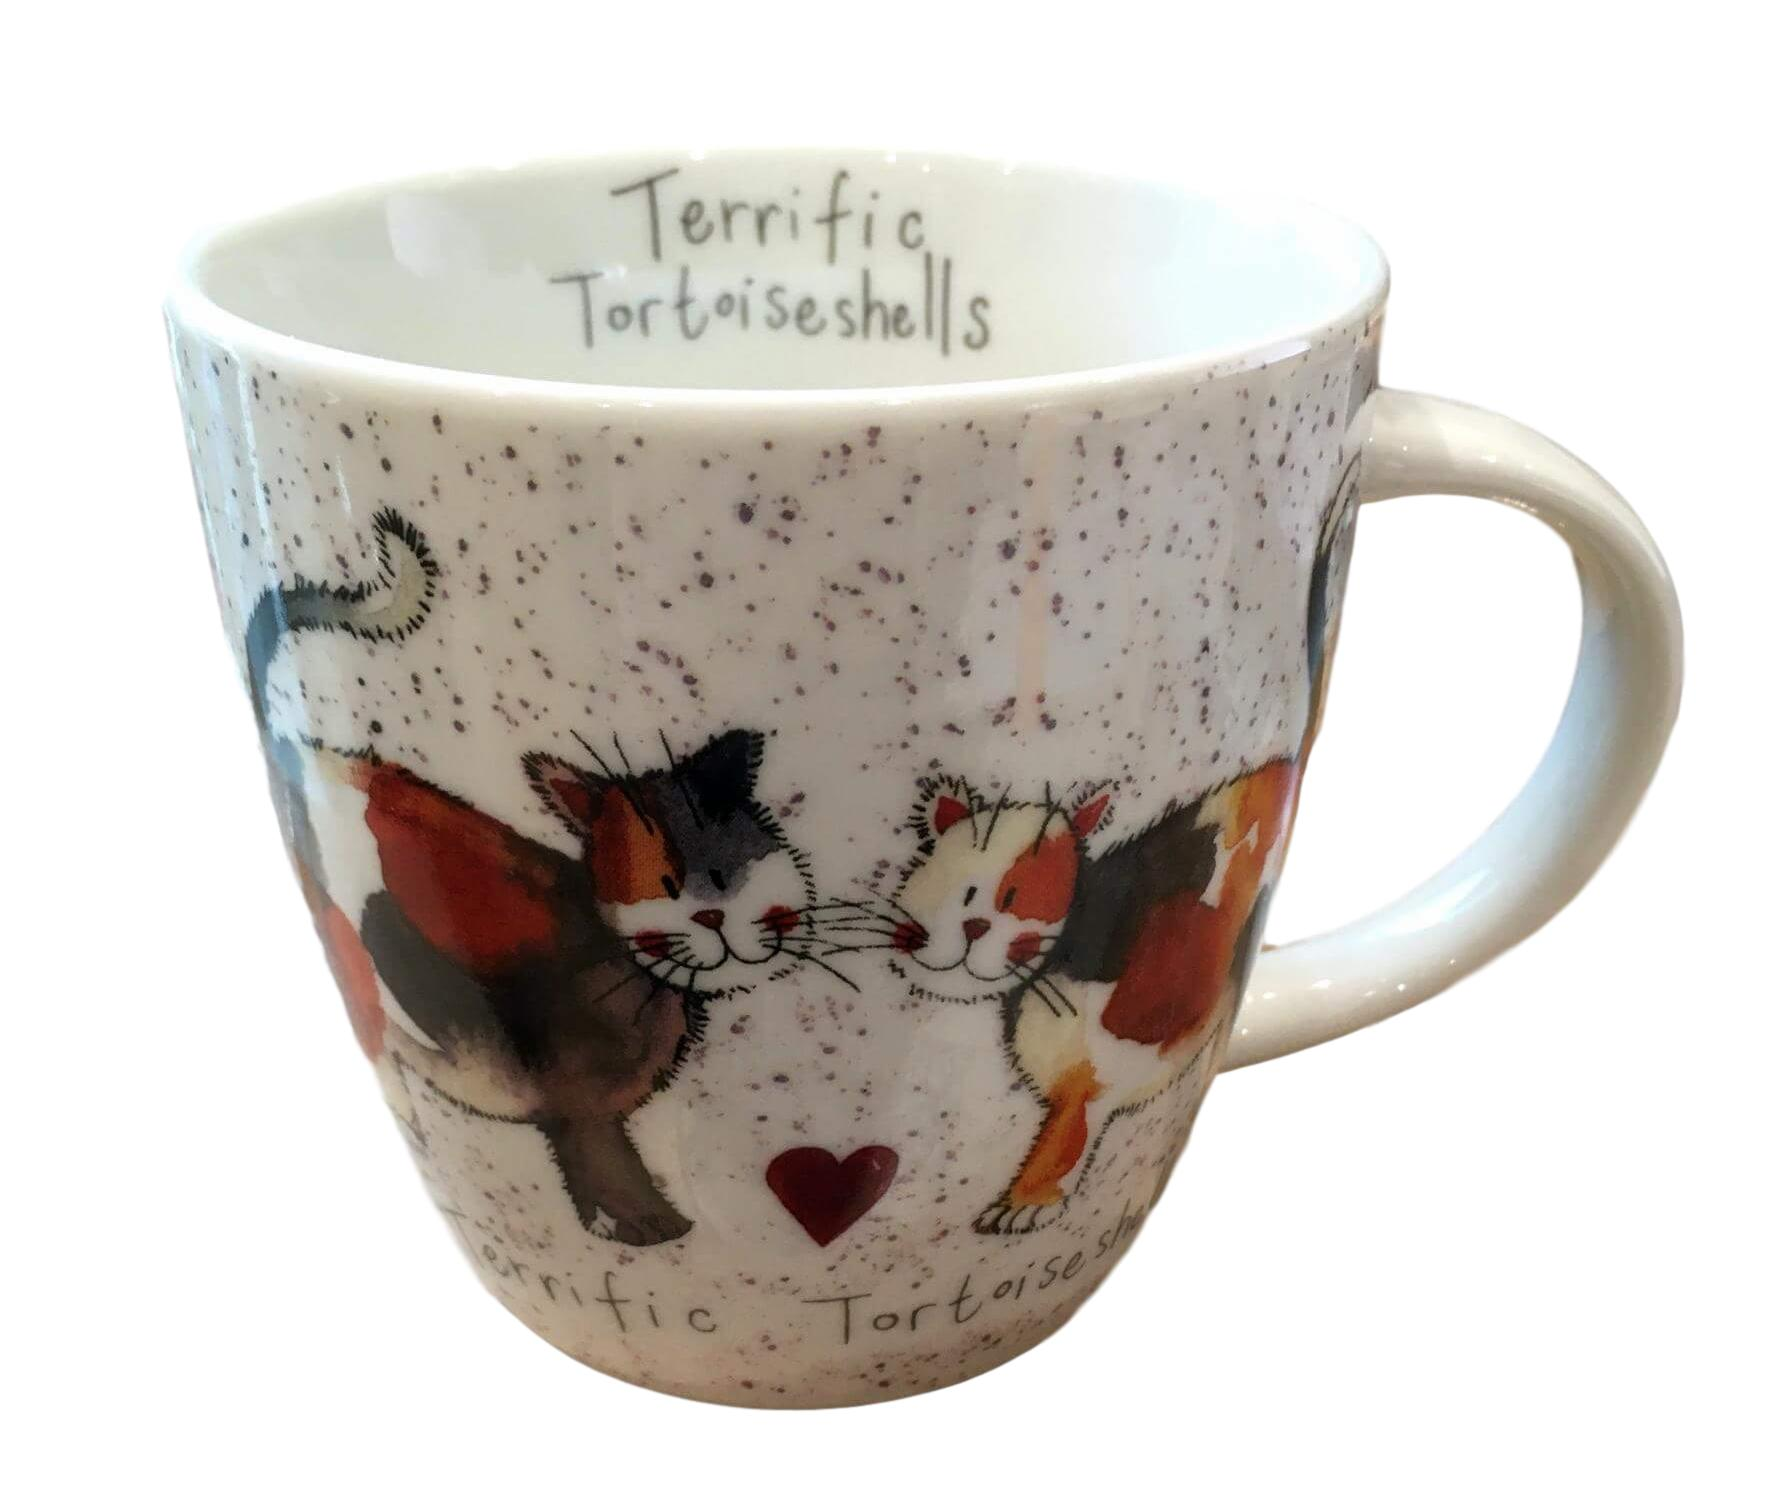 Terrific Tortoiseshells Cat Mug by Alex Clark